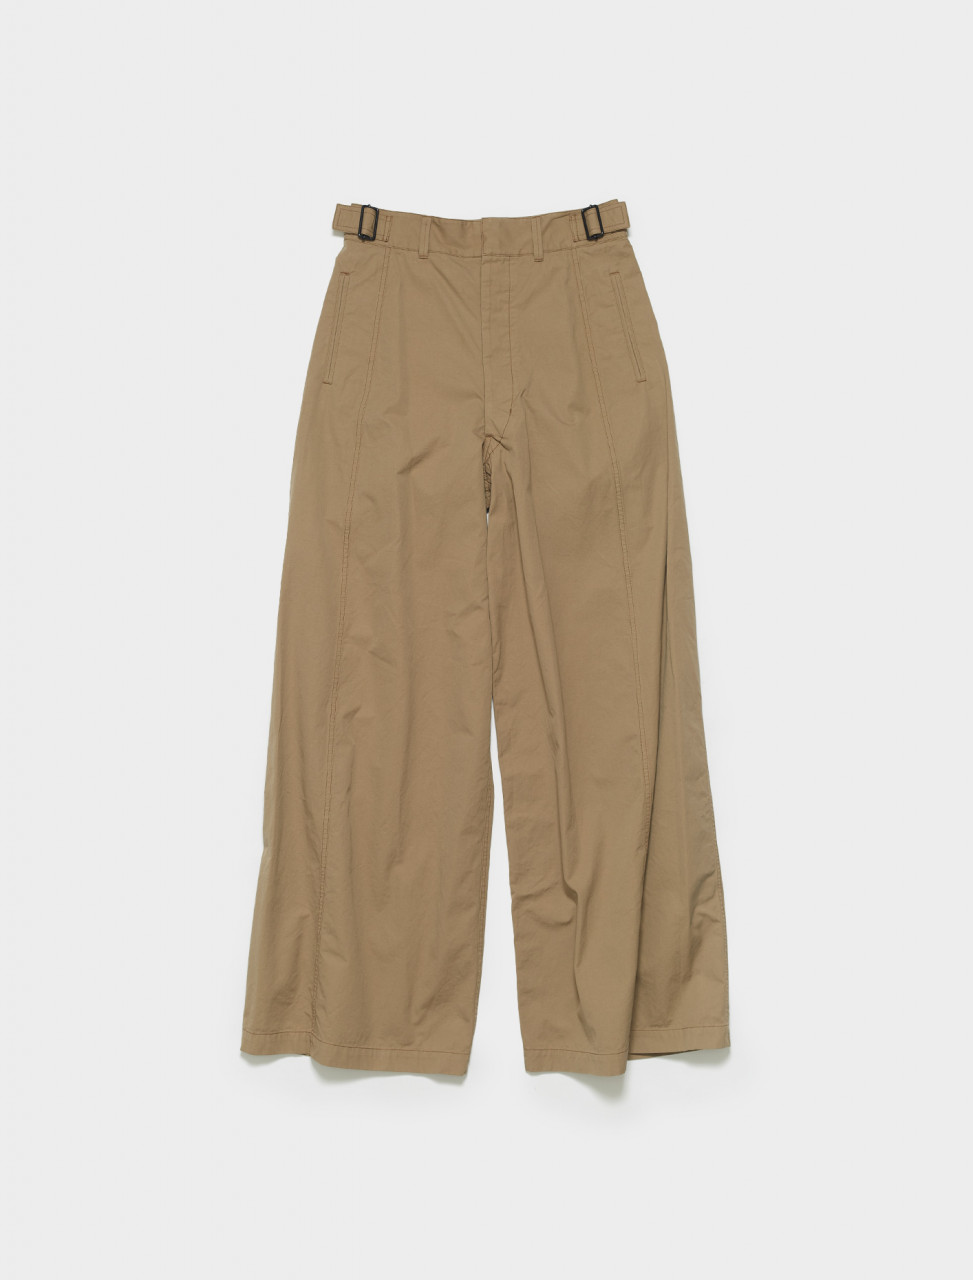 X-211-PA163-LF575-291 LEMAIRE OVERSIZED MILITARY PANT IN DARK BEIGE